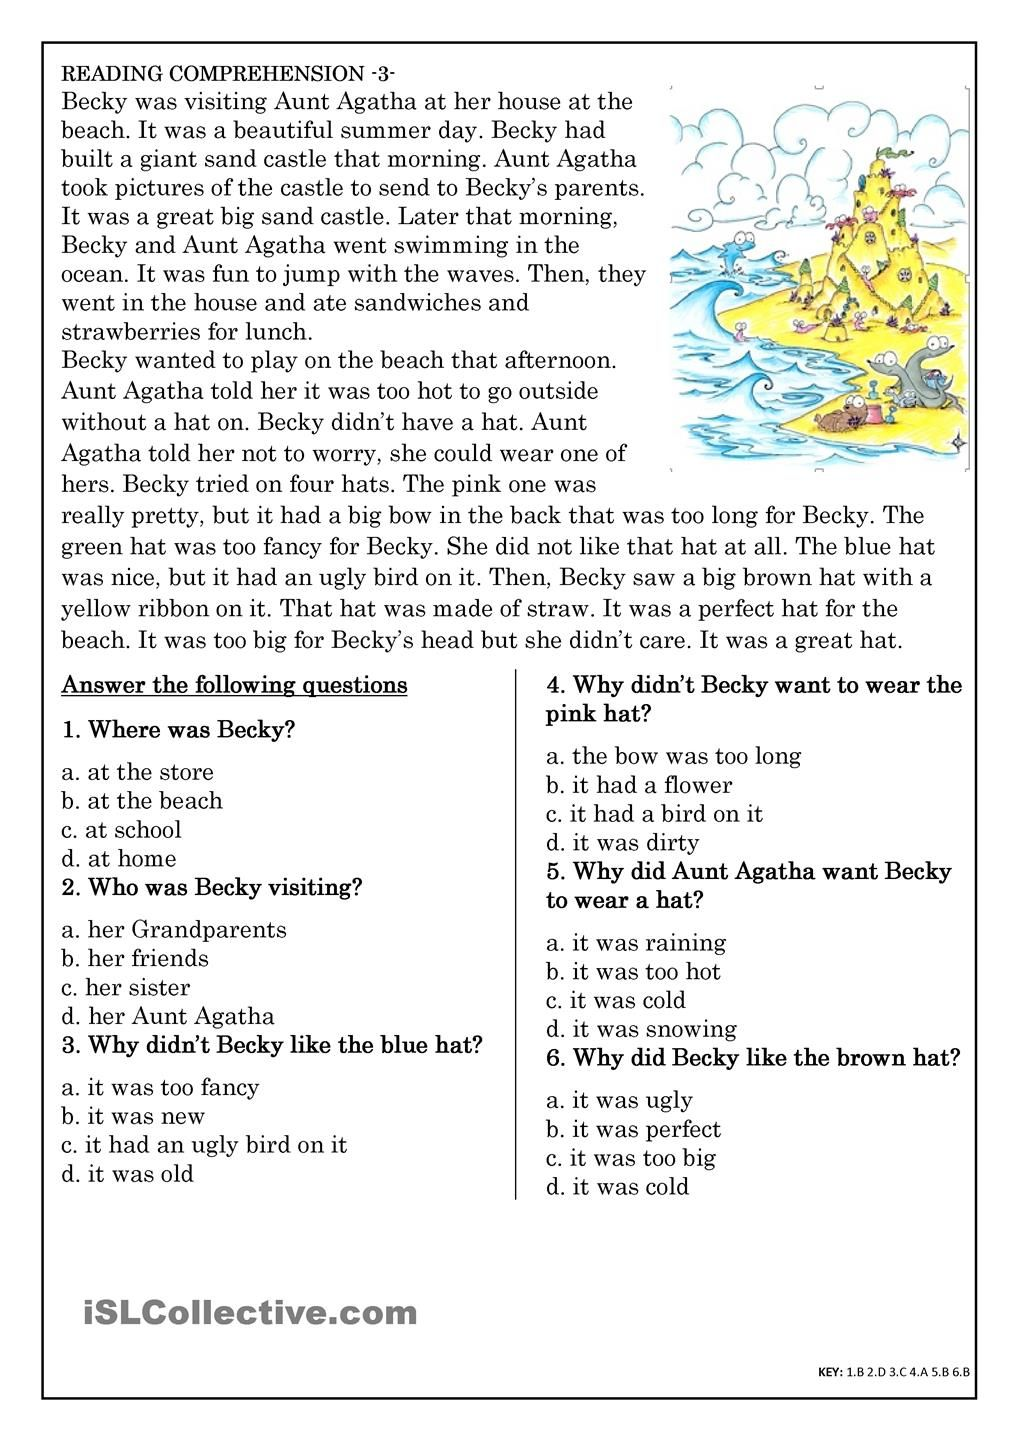 Worksheets Reading Comprehension Worksheets Multiple Choice reading comprehension for beginner and elementary students 3 esl worksheet free printable worksheets made by teachers